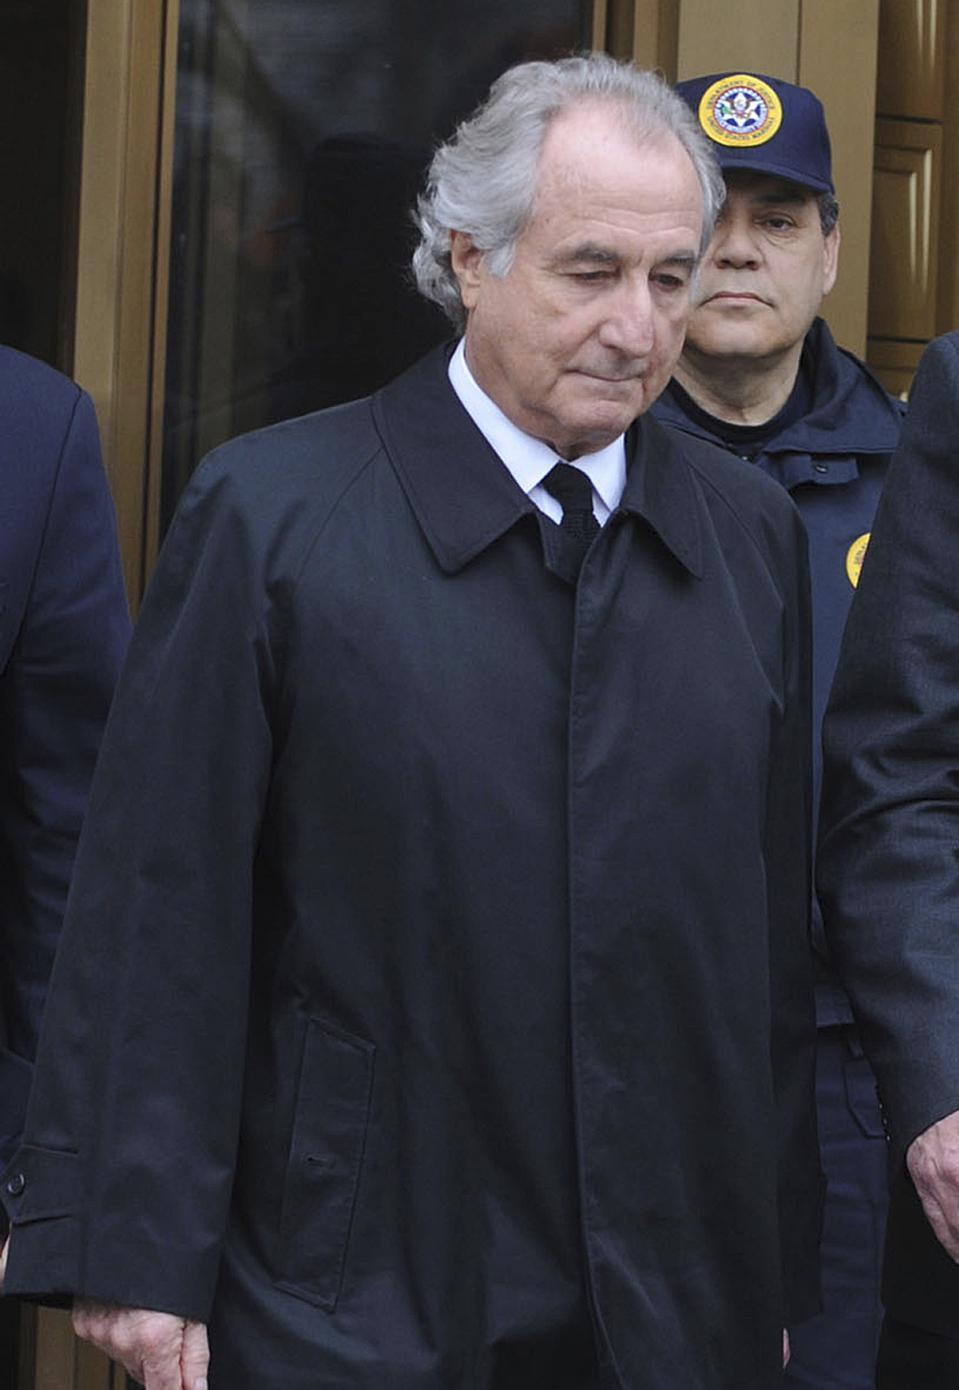 Bernie Madoff died at 82 years old, a dozen years after his scandal rocked the financial services world.